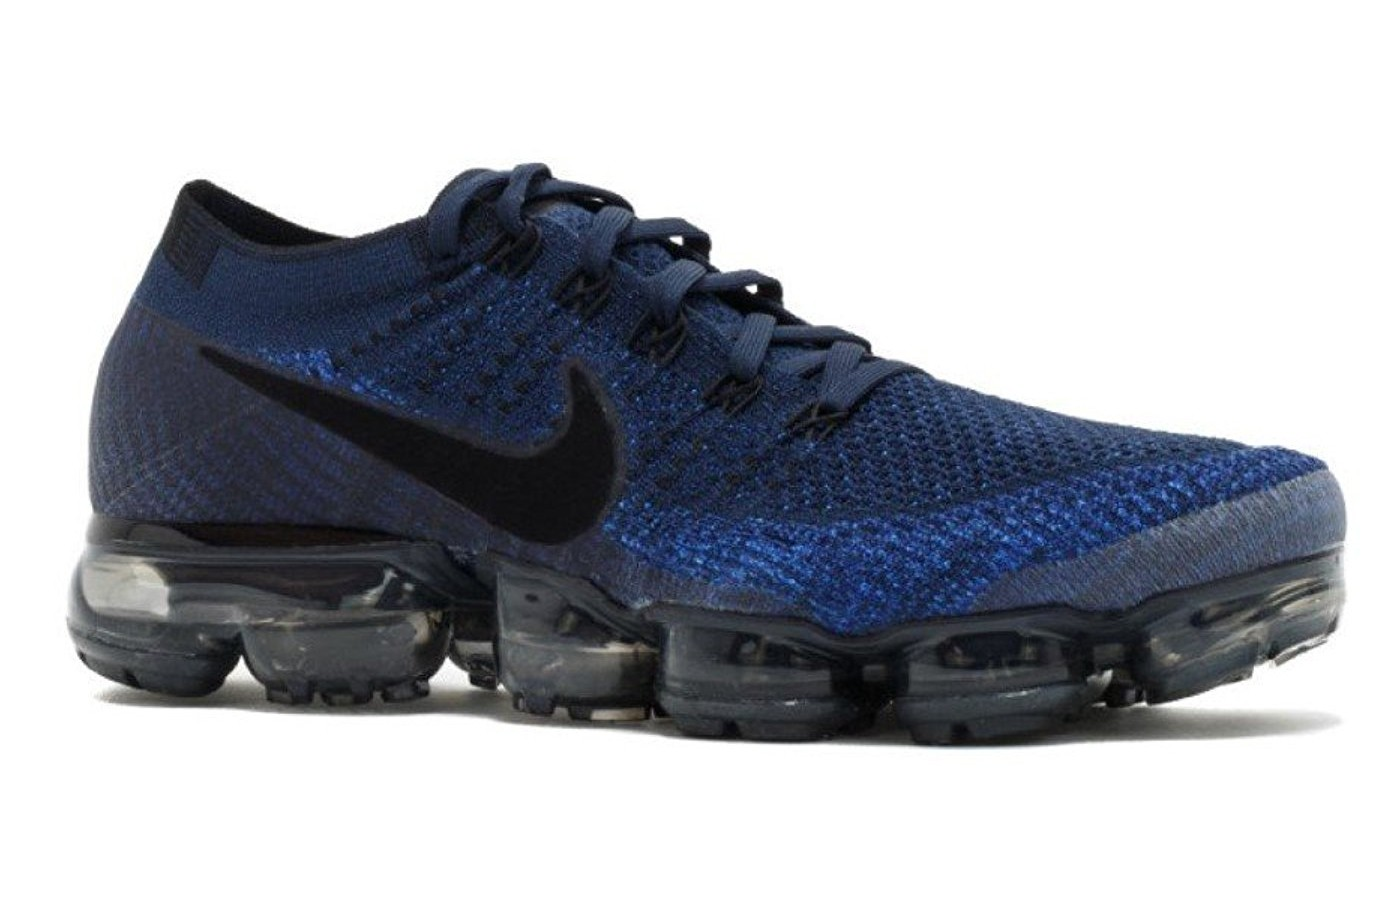 7639006eee6 Nike Air Vapormax Flyknit Reviewed for Performance in 2019